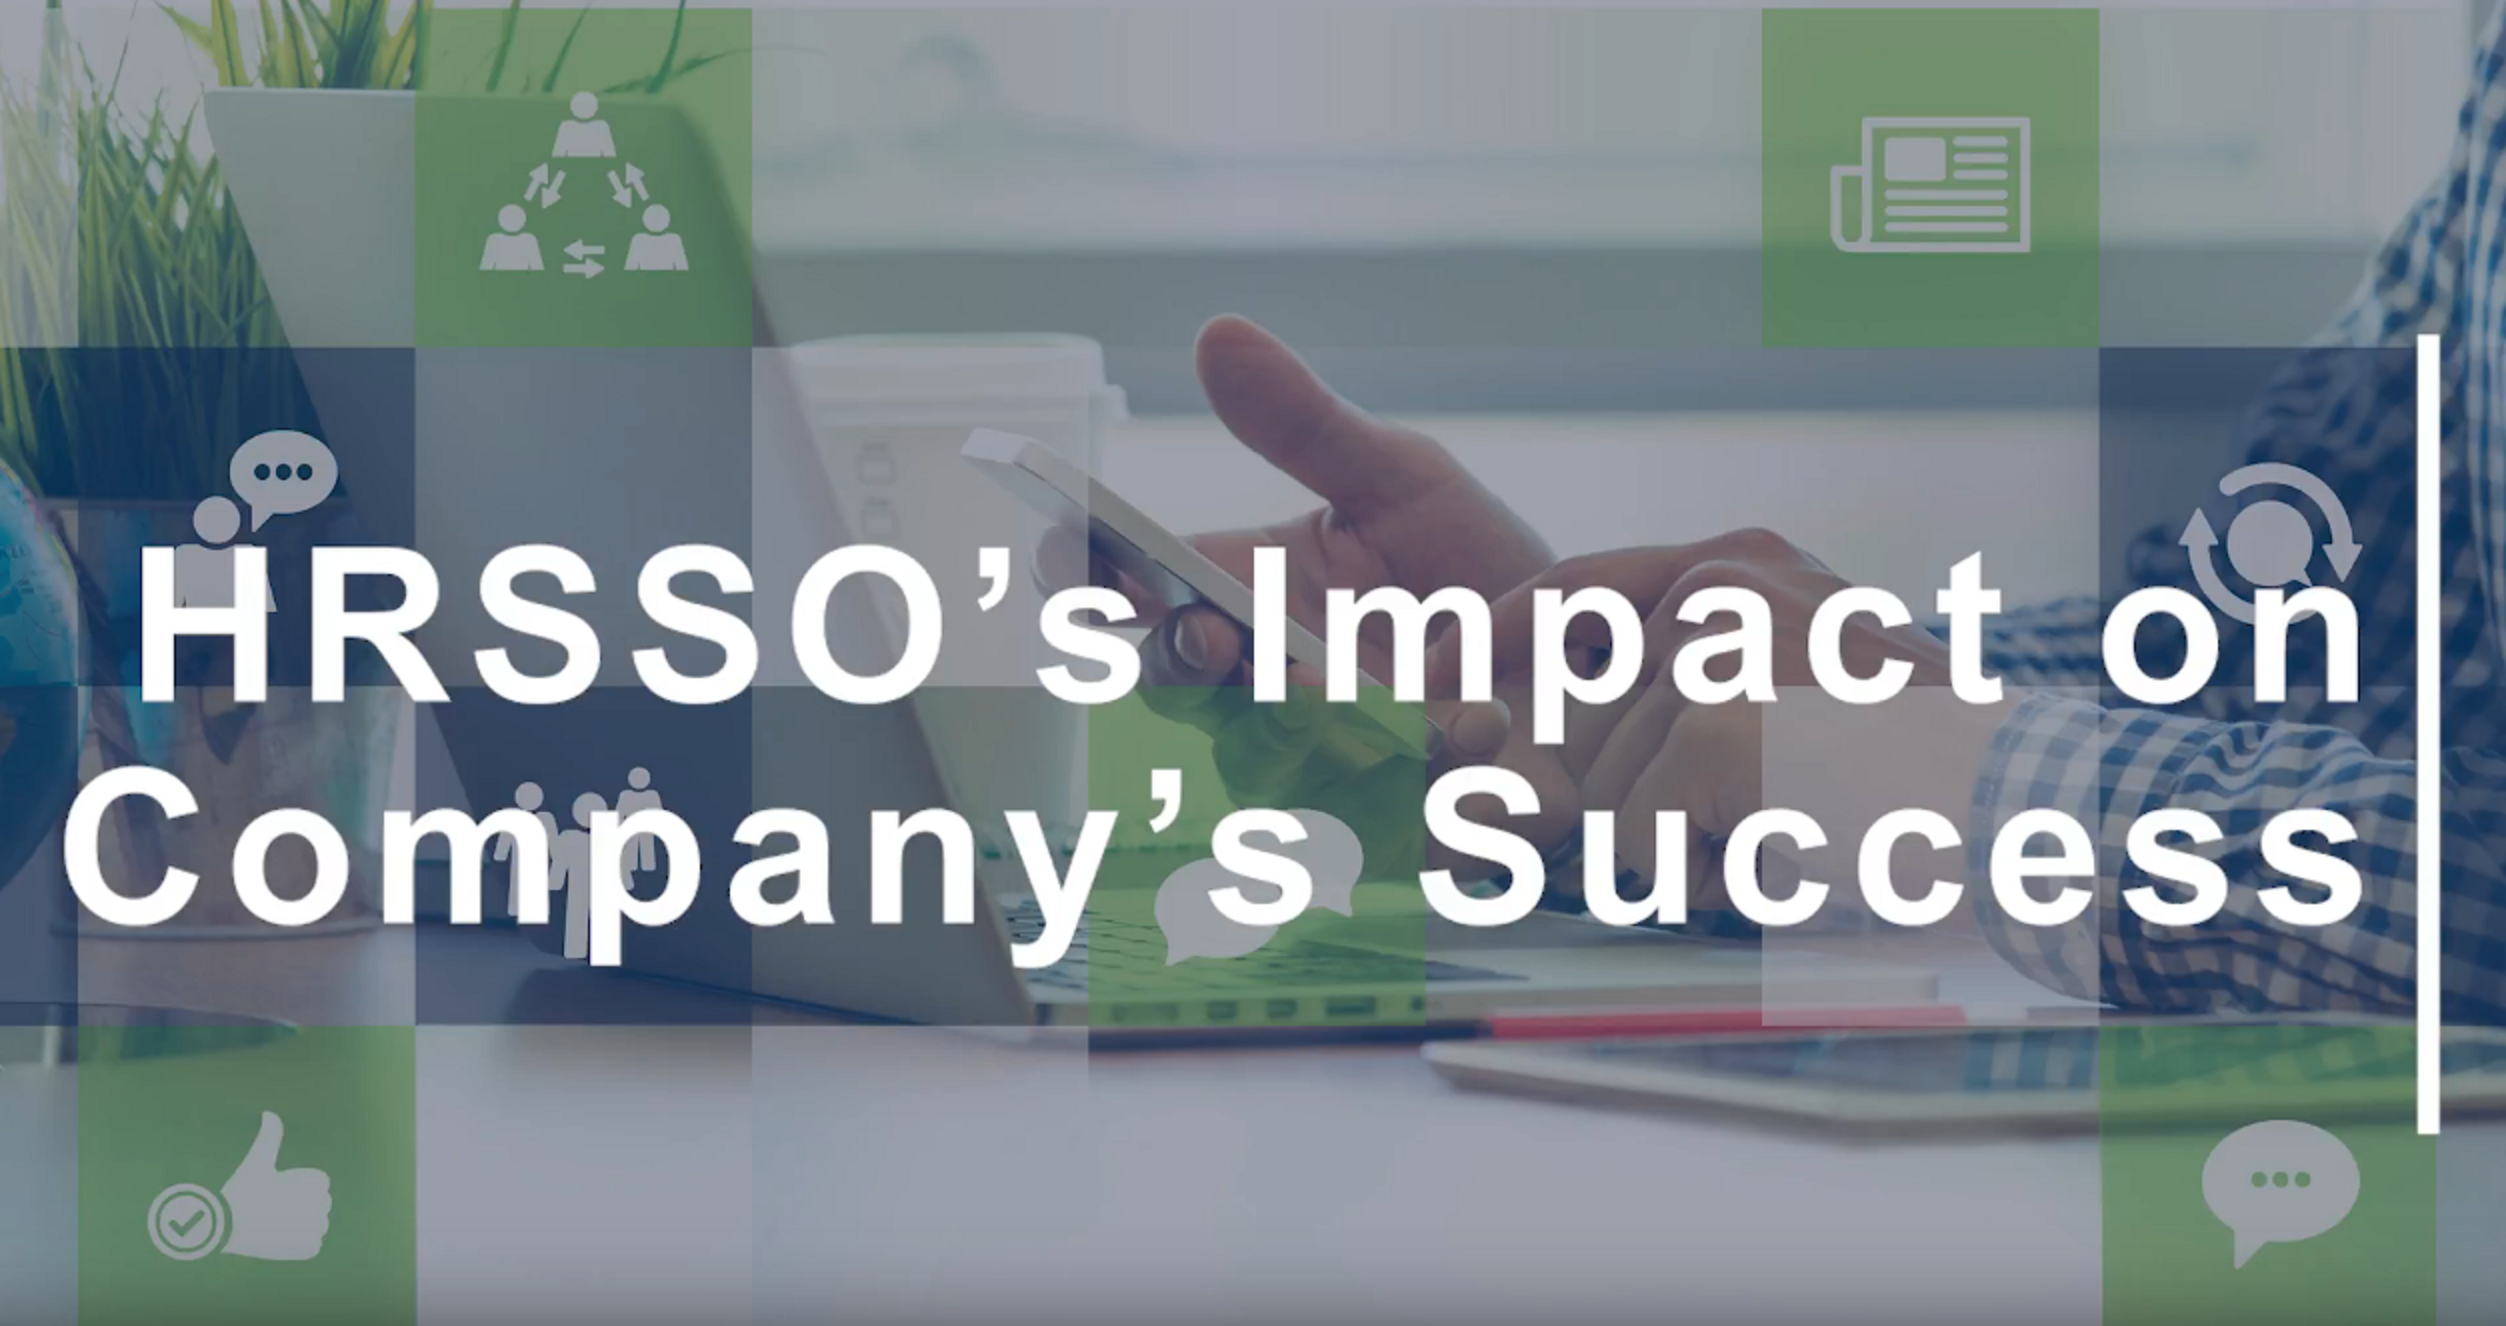 Rolls-Royce & Cisco Systems: HRSSO's Impact on Company Success